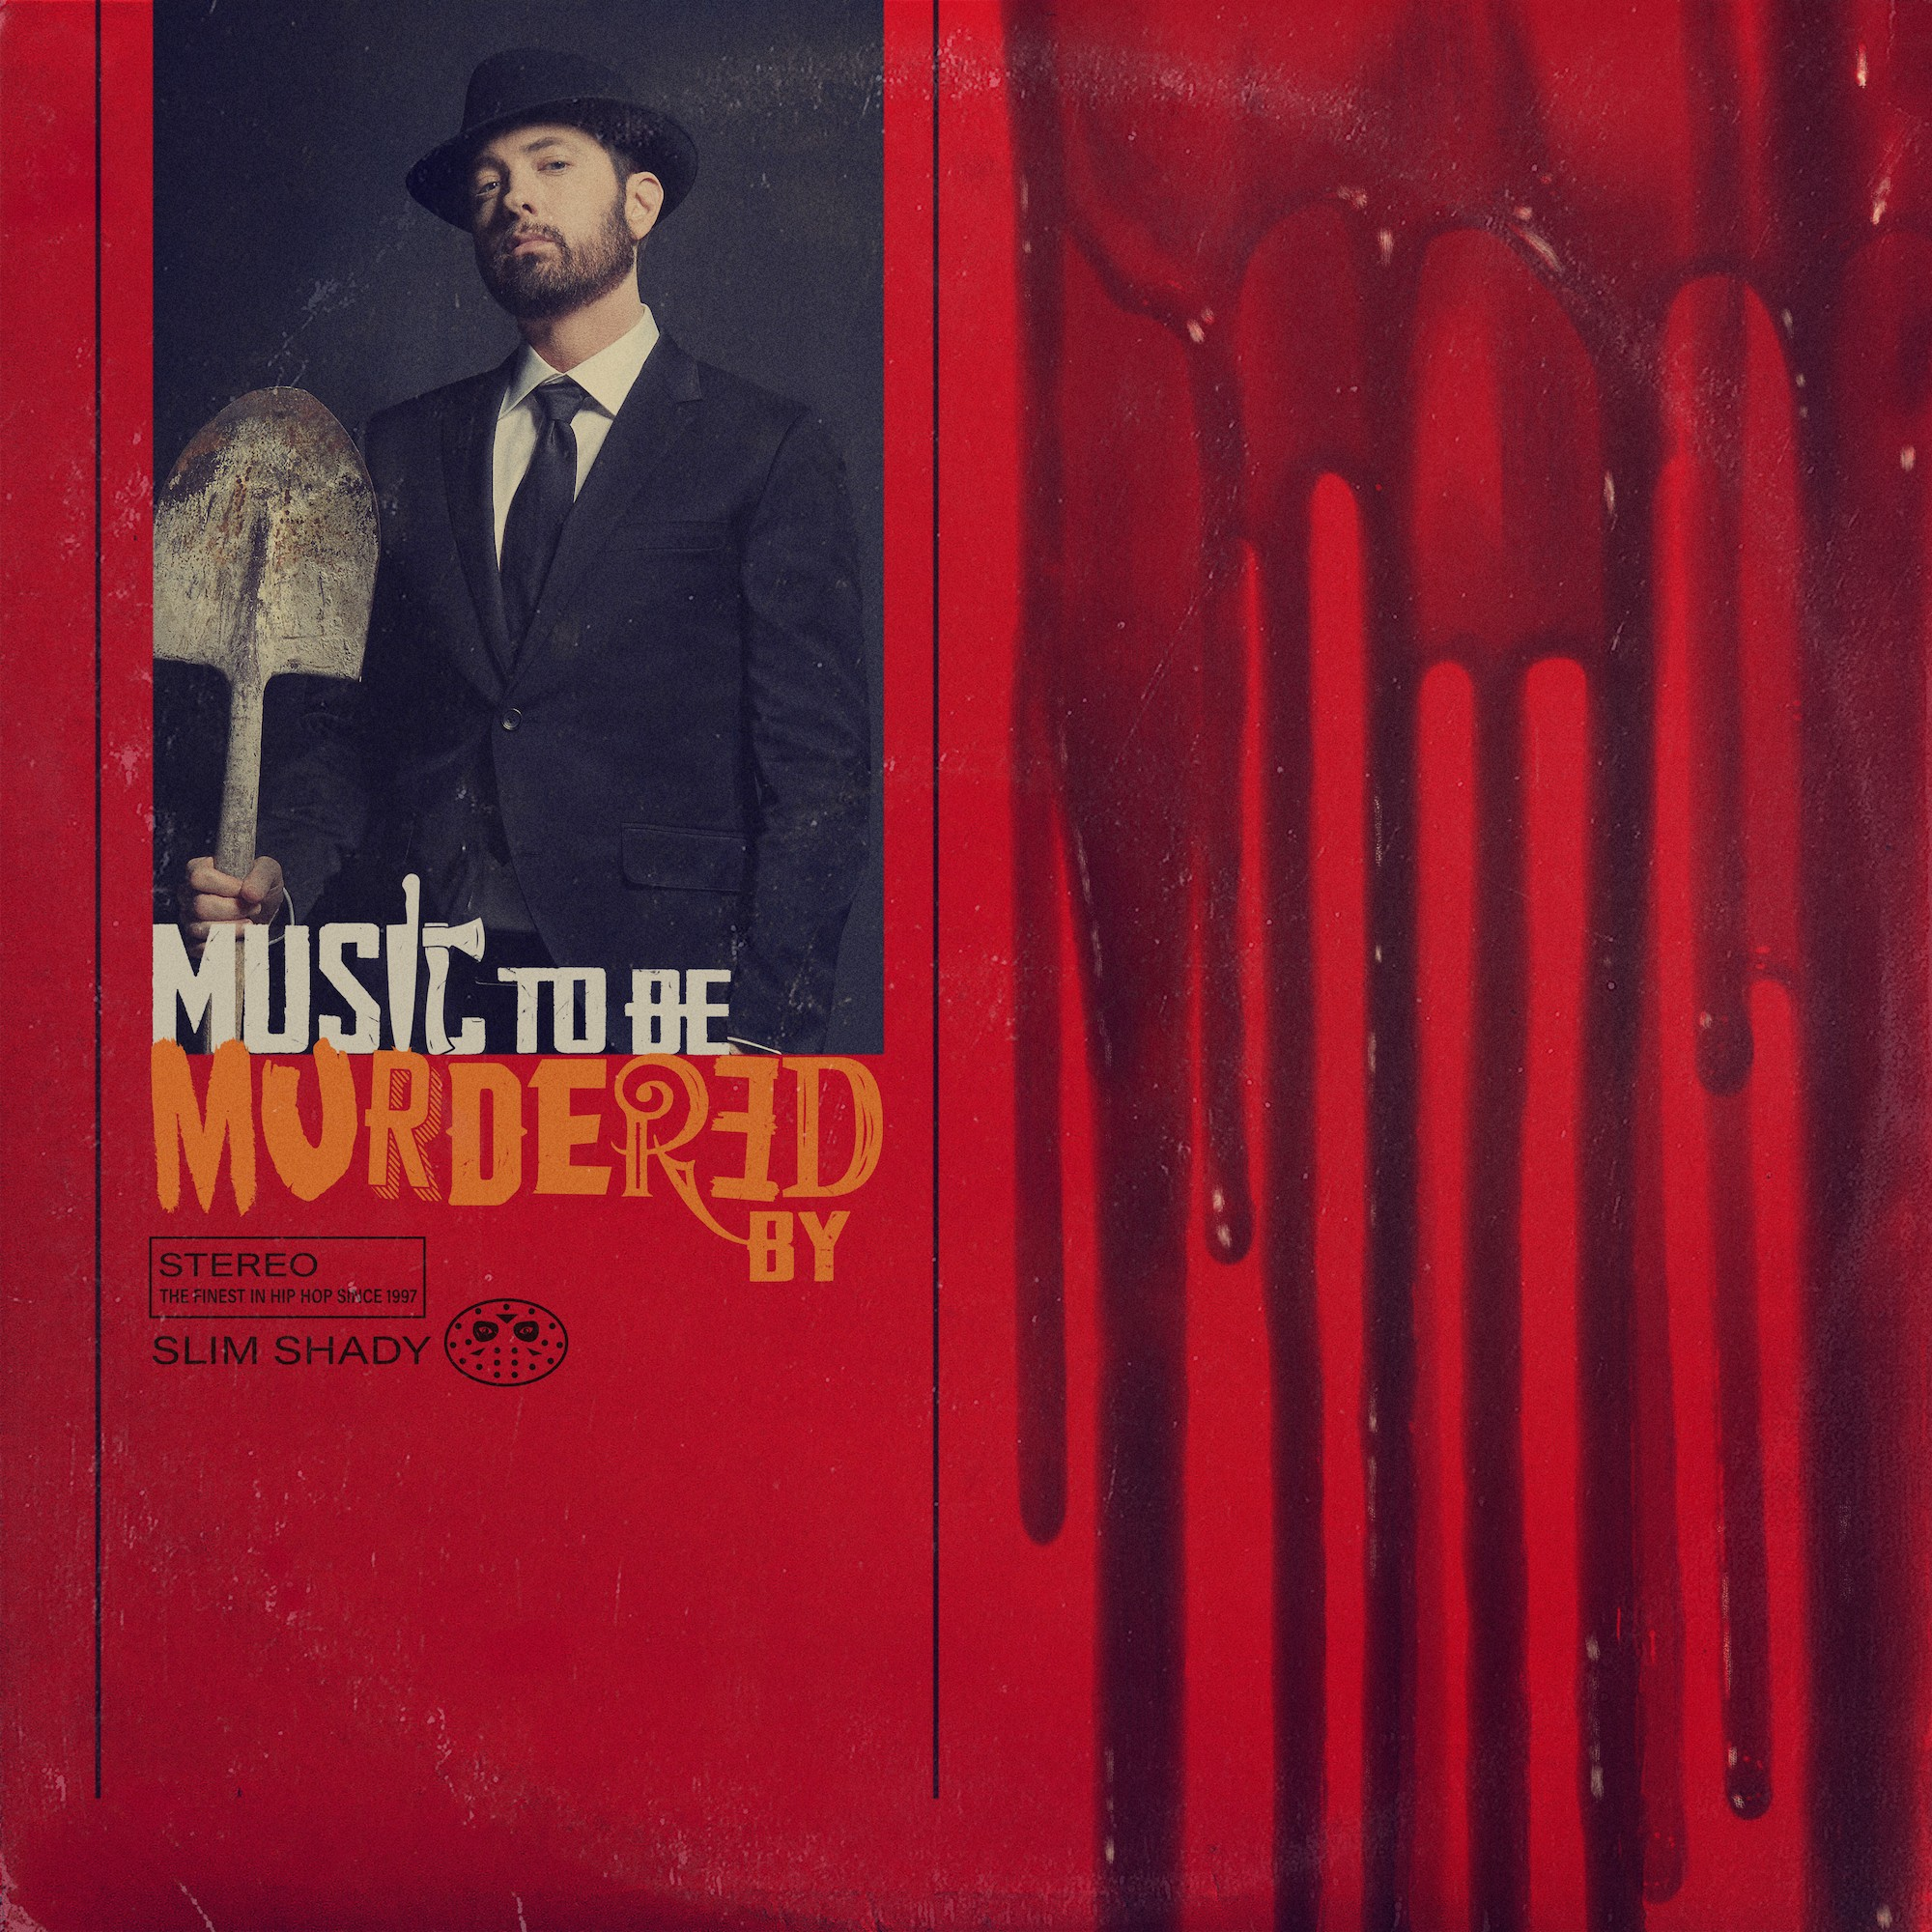 audio review : Music To Be Murdered By ( album ) ... Eminem